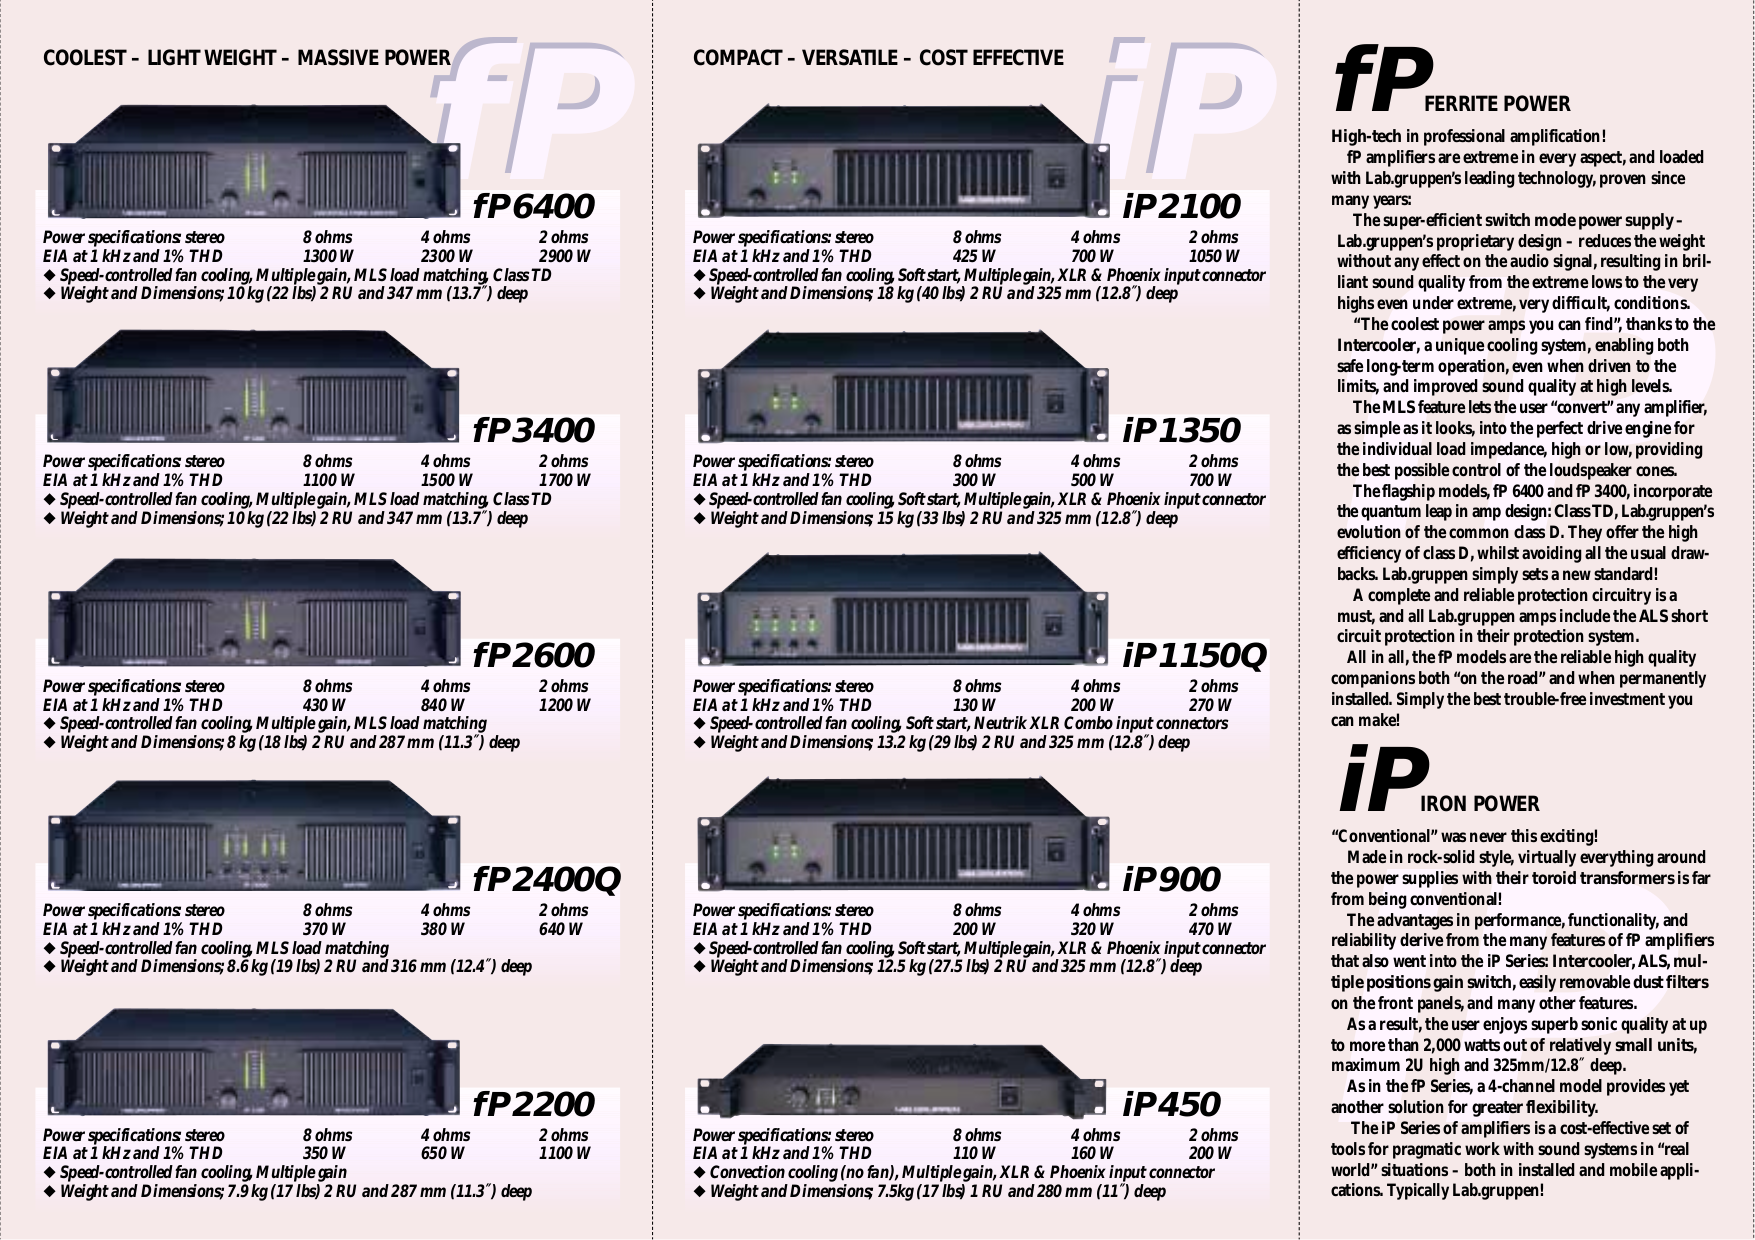 pdf for Lab.gruppen Amp iP Series IP 900 manual